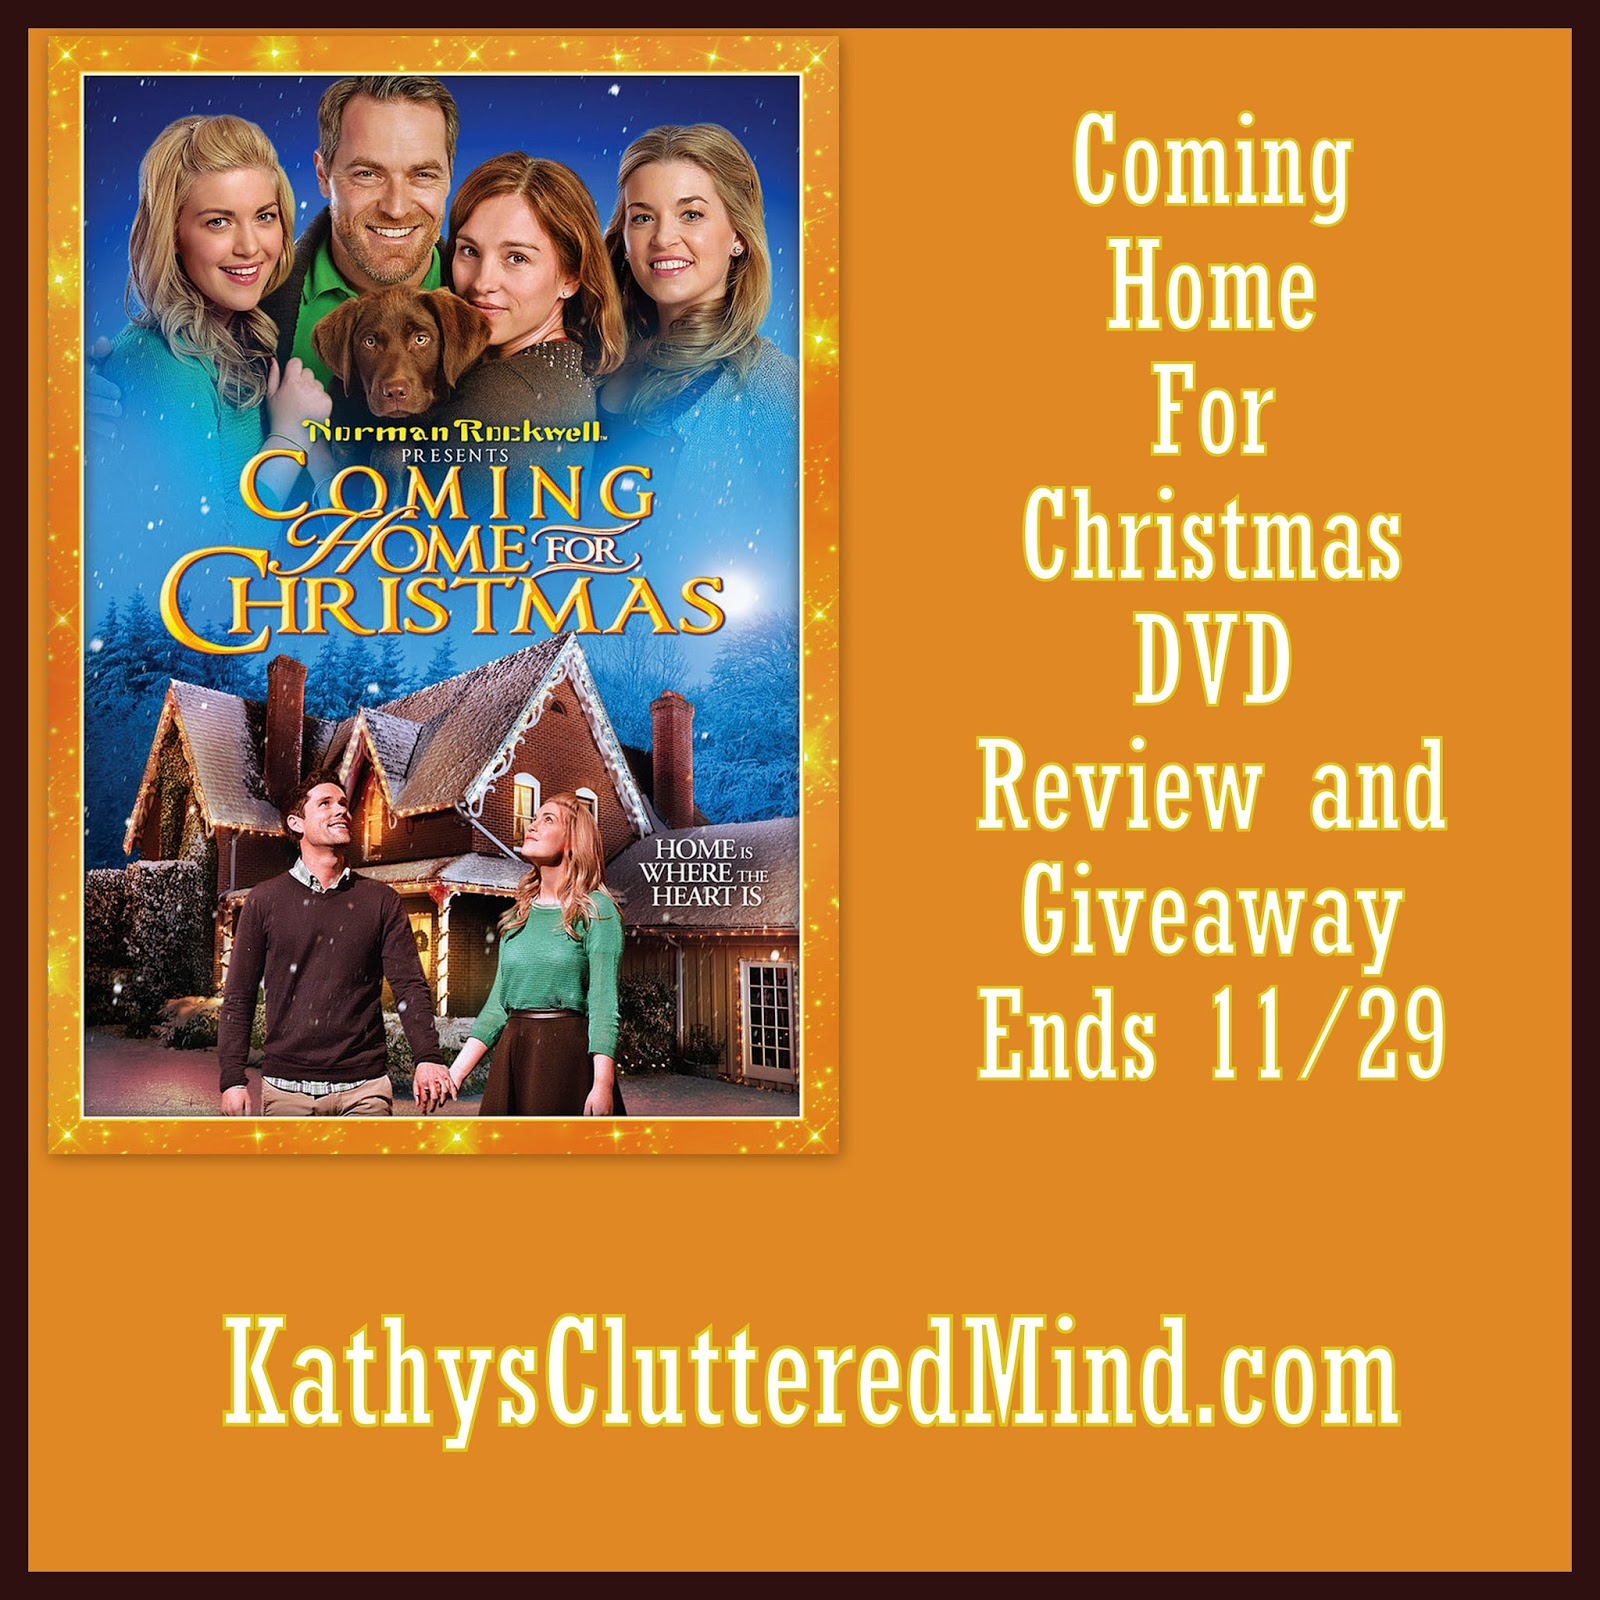 Kathys Cluttered Mind: Coming Home For Christmas DVD Review and Giveaway